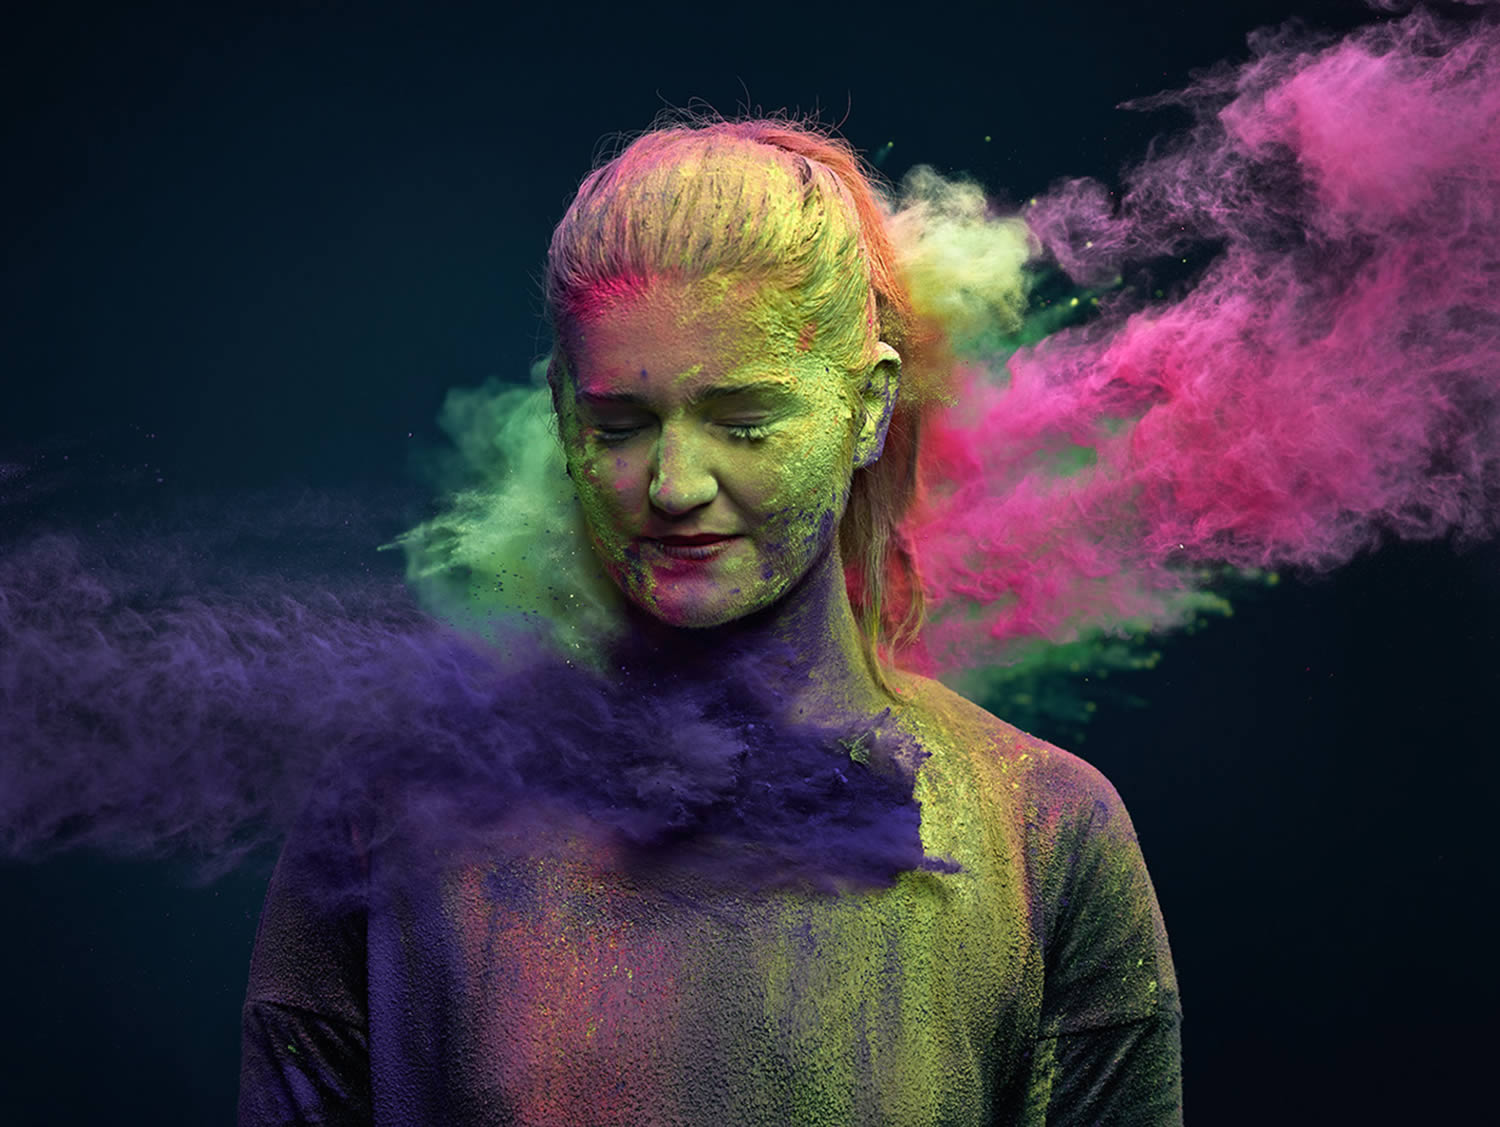 colorful powder thrown on woman,Ars Thanea Portraits